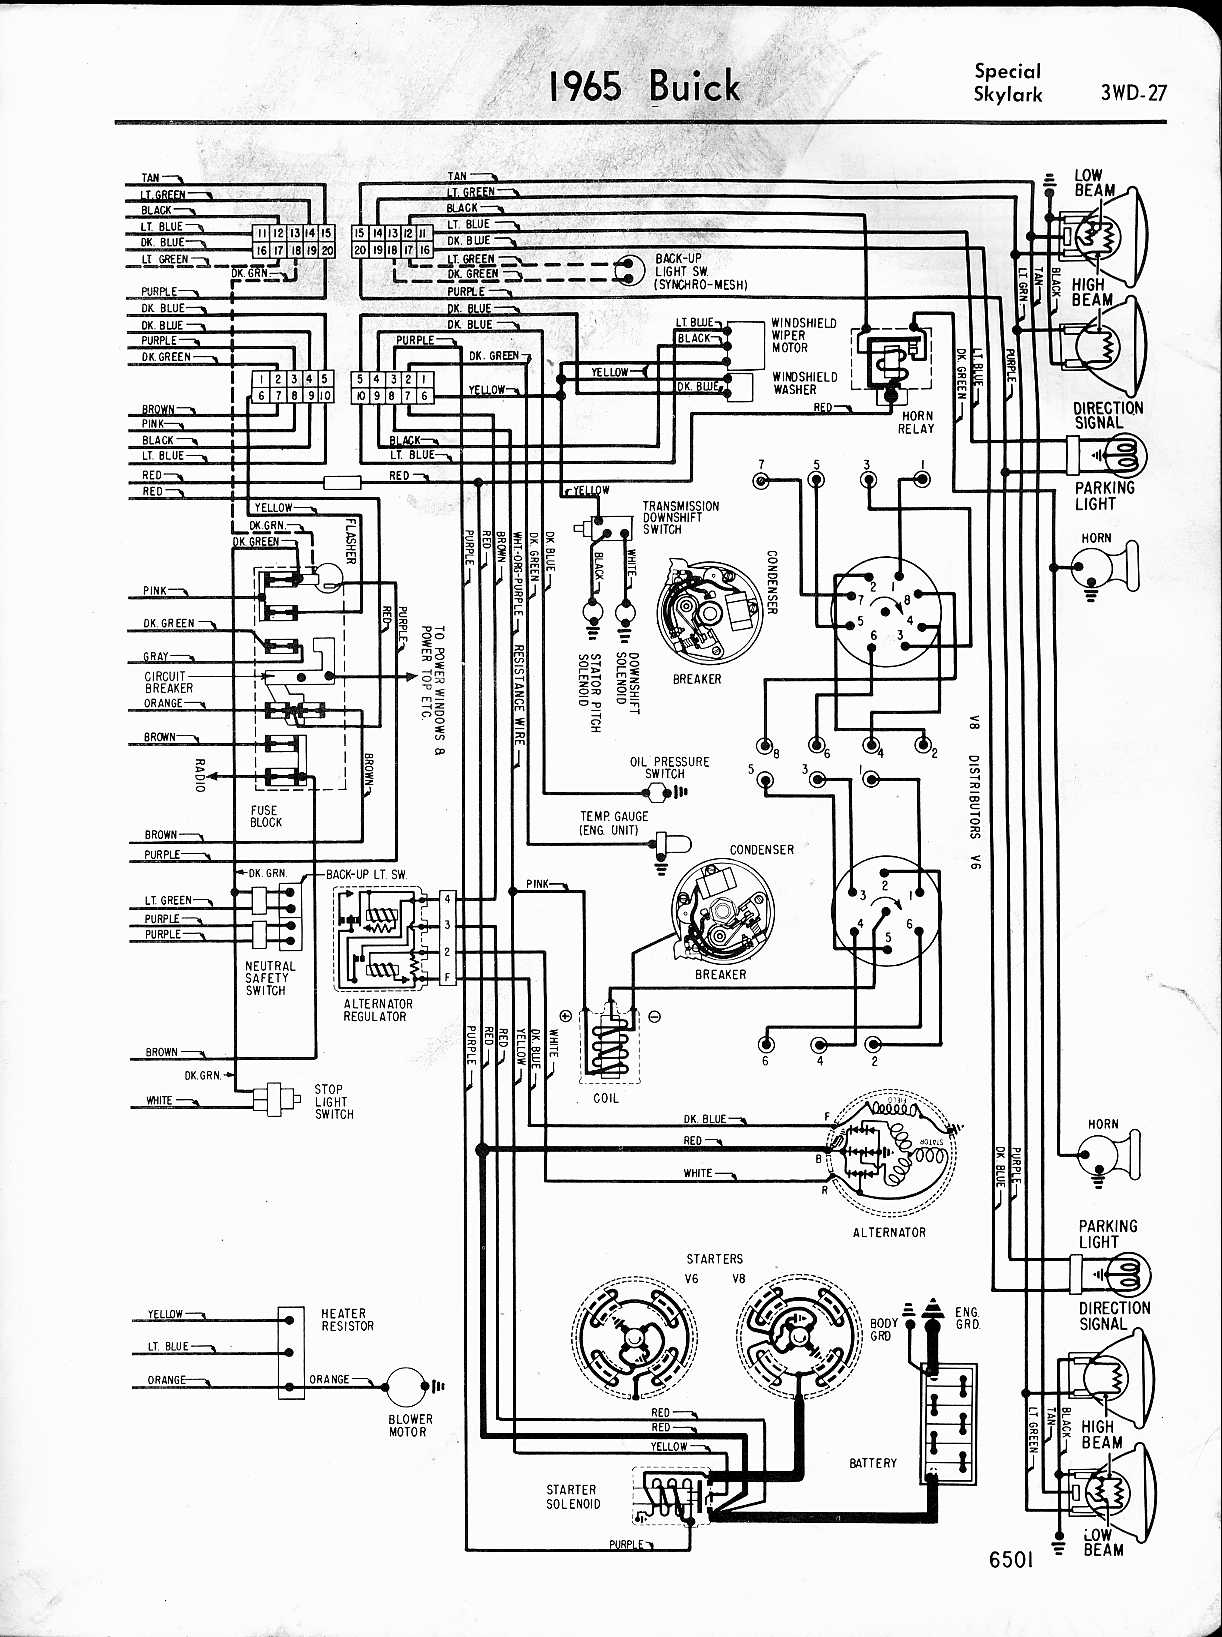 Mwirebuic Wd on 65 Dodge Coronet Wiring Diagram